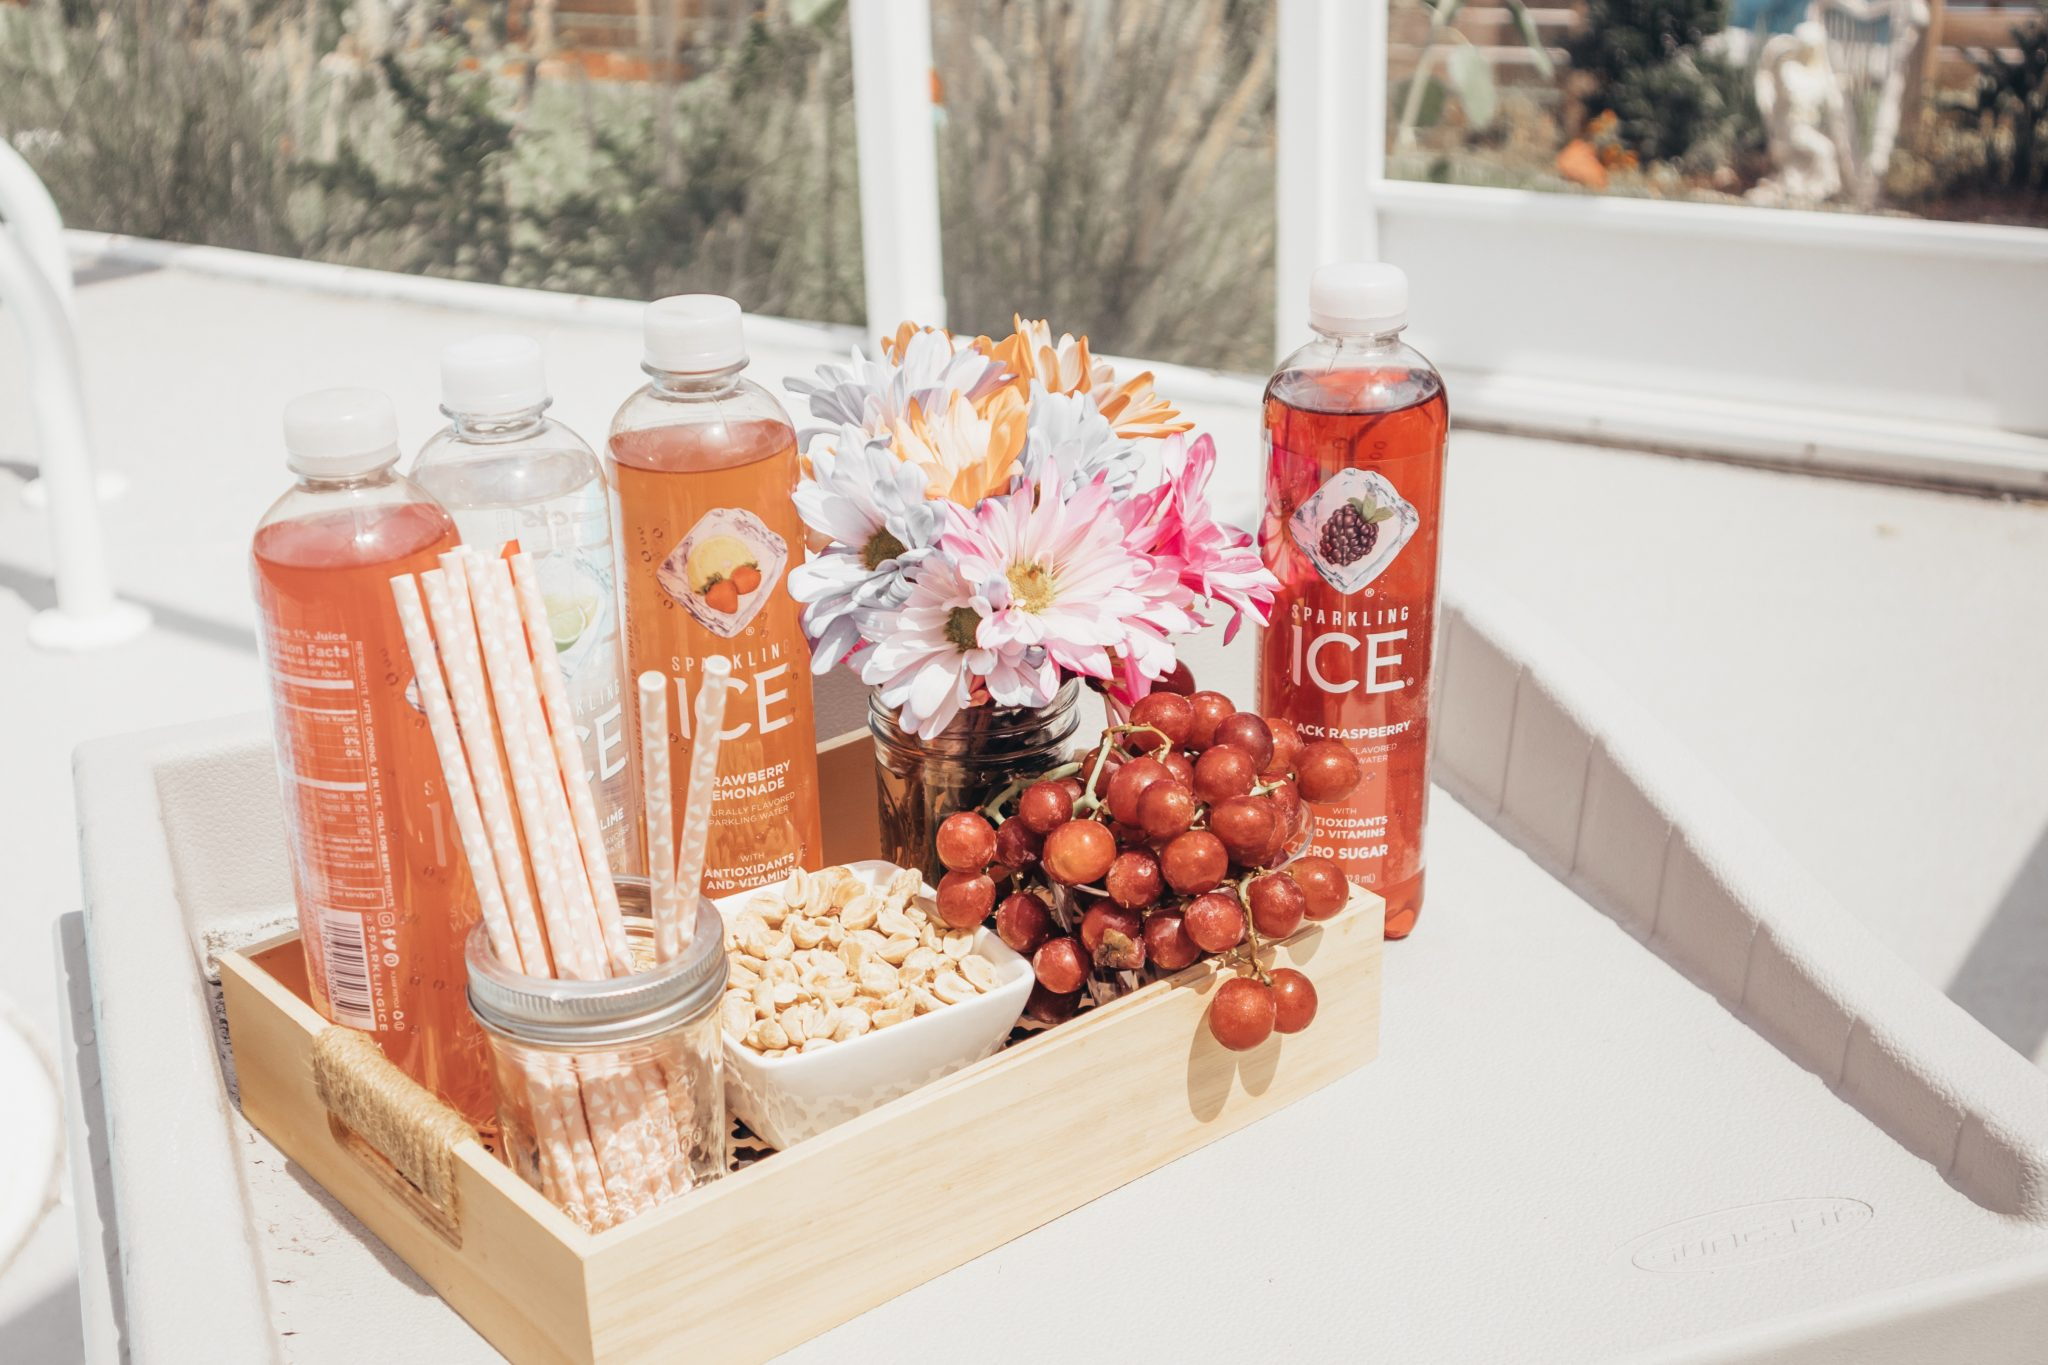 how to create a healthy poolside spread the whole family will enjoy, healthy summer snacks, summer drinks #ad #GetFizzy, Tampa parenting blog mothers blog motherhood blog Florida travel blogger travel influencer healthy mom blogger spring hill florida lifestyle parenting blog best mom blog 2018 Disney blogger